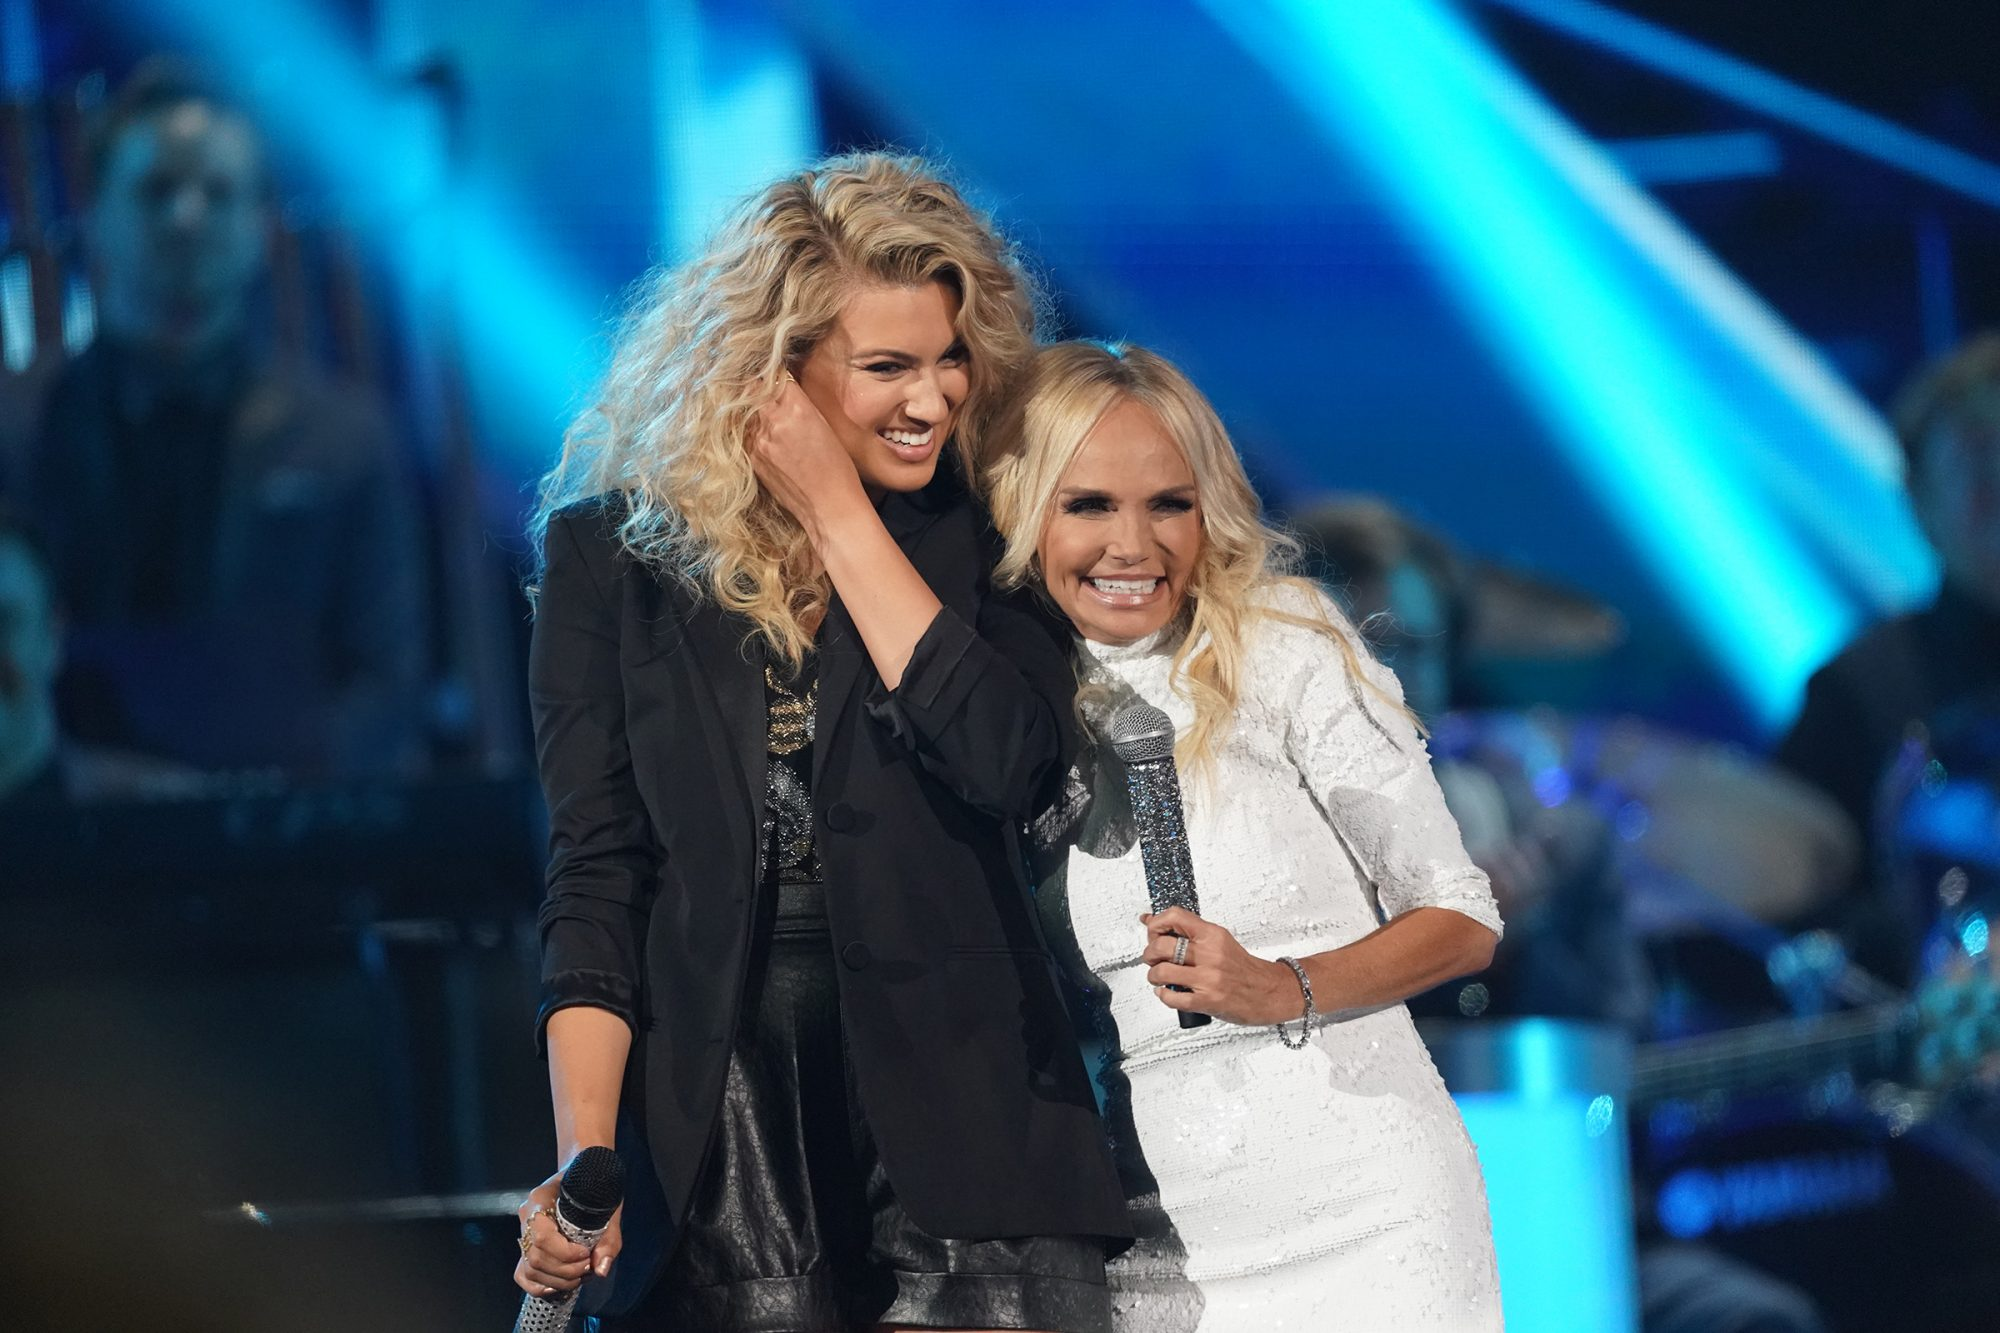 """Tori Kelly and Kristin Chenoweth perform """"Children Go Where I Send Thee"""" with Trisha Yearwood at the 2019 """"CMA Country Christmas"""" special filmed at Belmont's Curb Center in Nashville, Tennessee. """"CMA Country Christmas"""" will air on Tuesday, December 3 on ABC."""